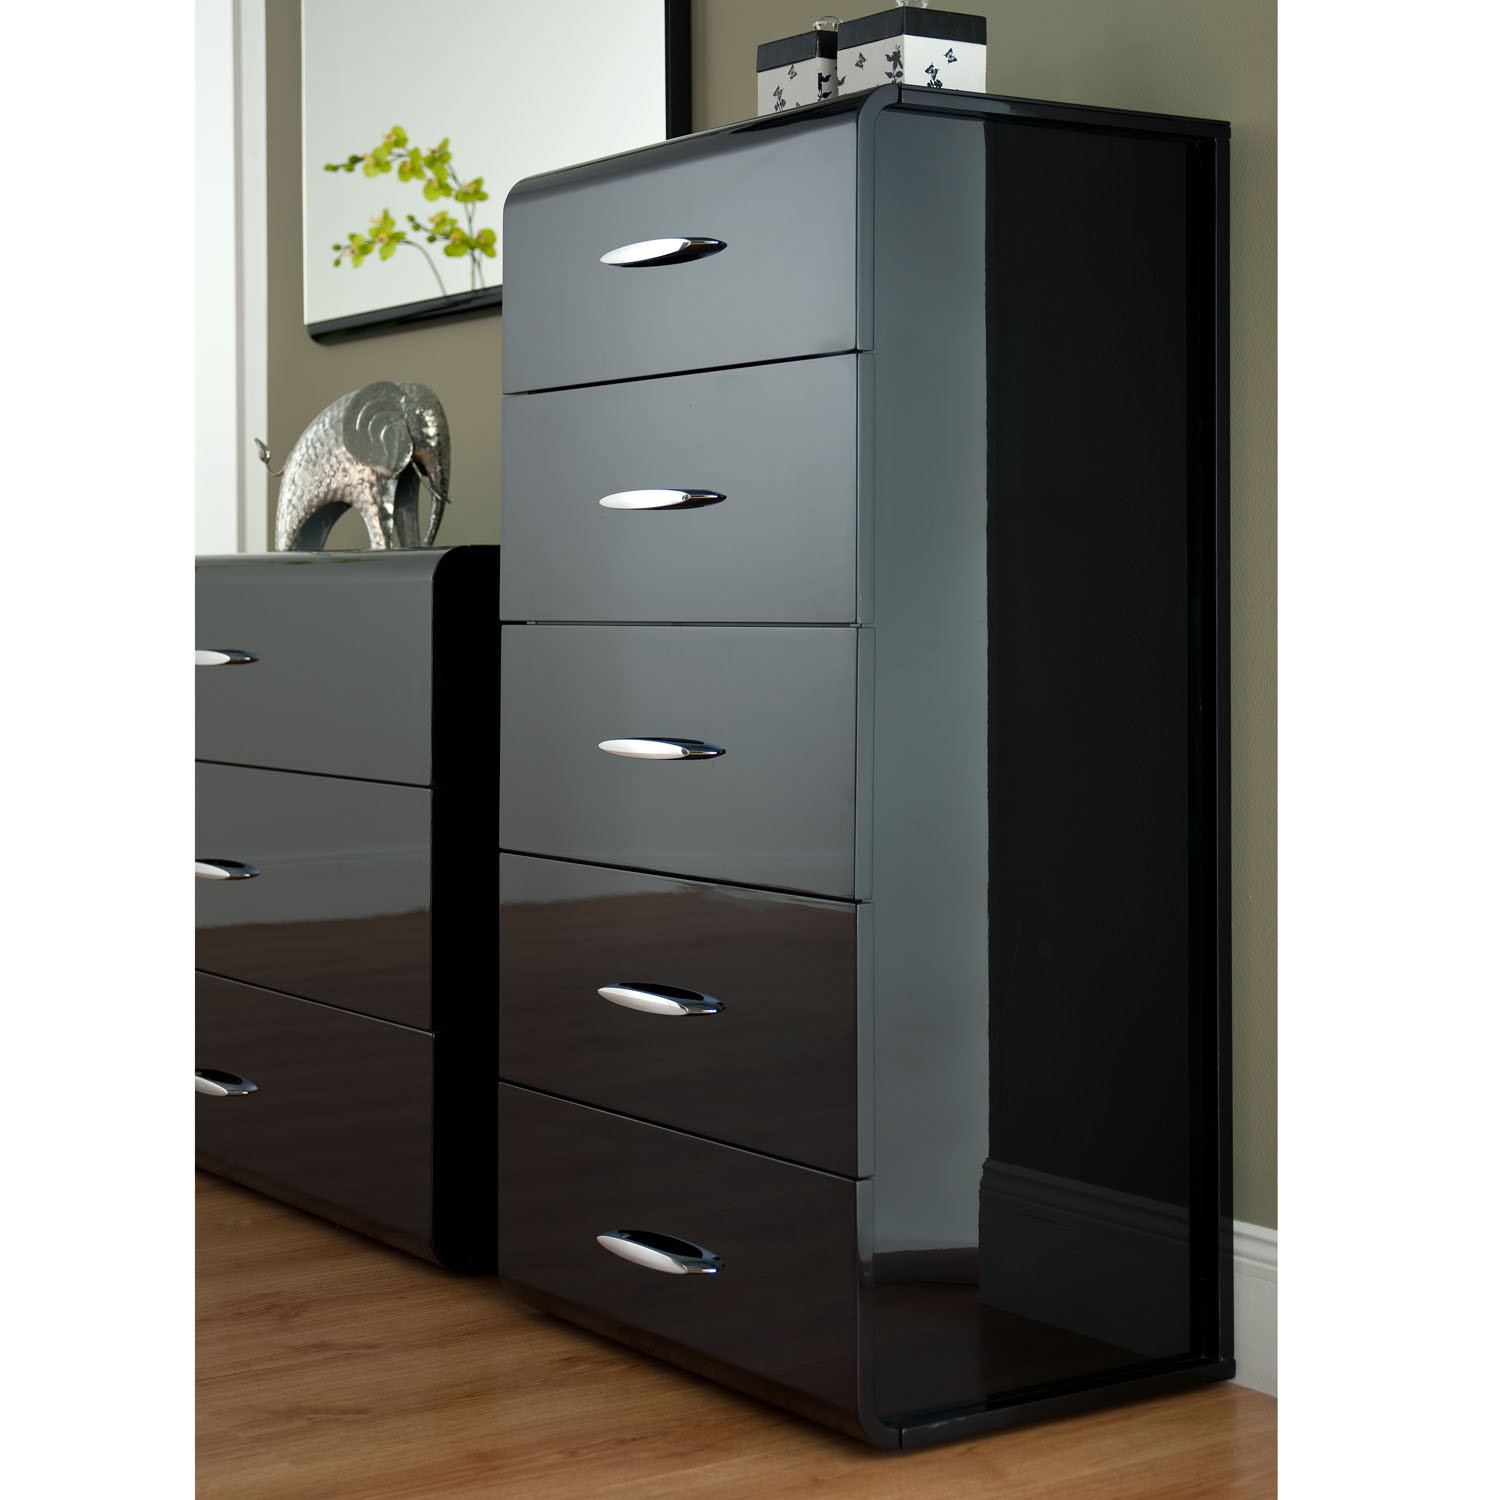 Black Tall Dresser Ideas That Will Improve Your Interior